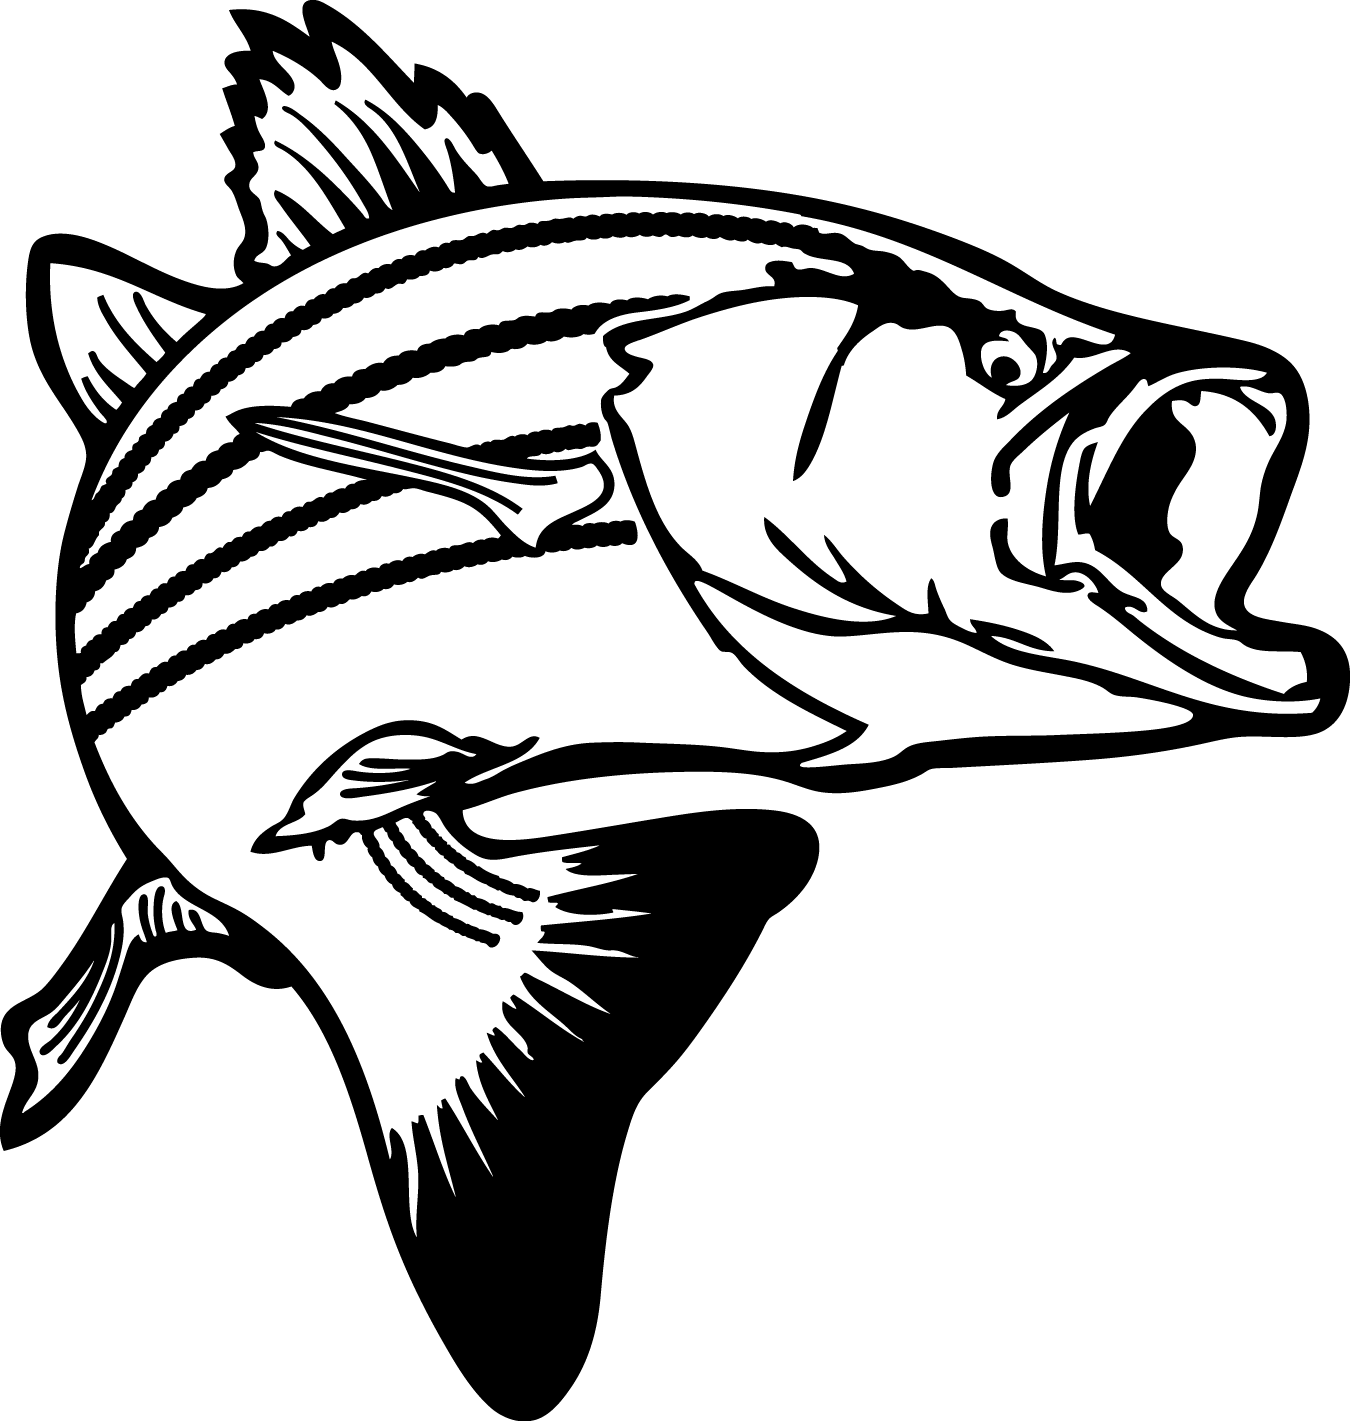 Fish food clipart black and white. Jumping bass clip art